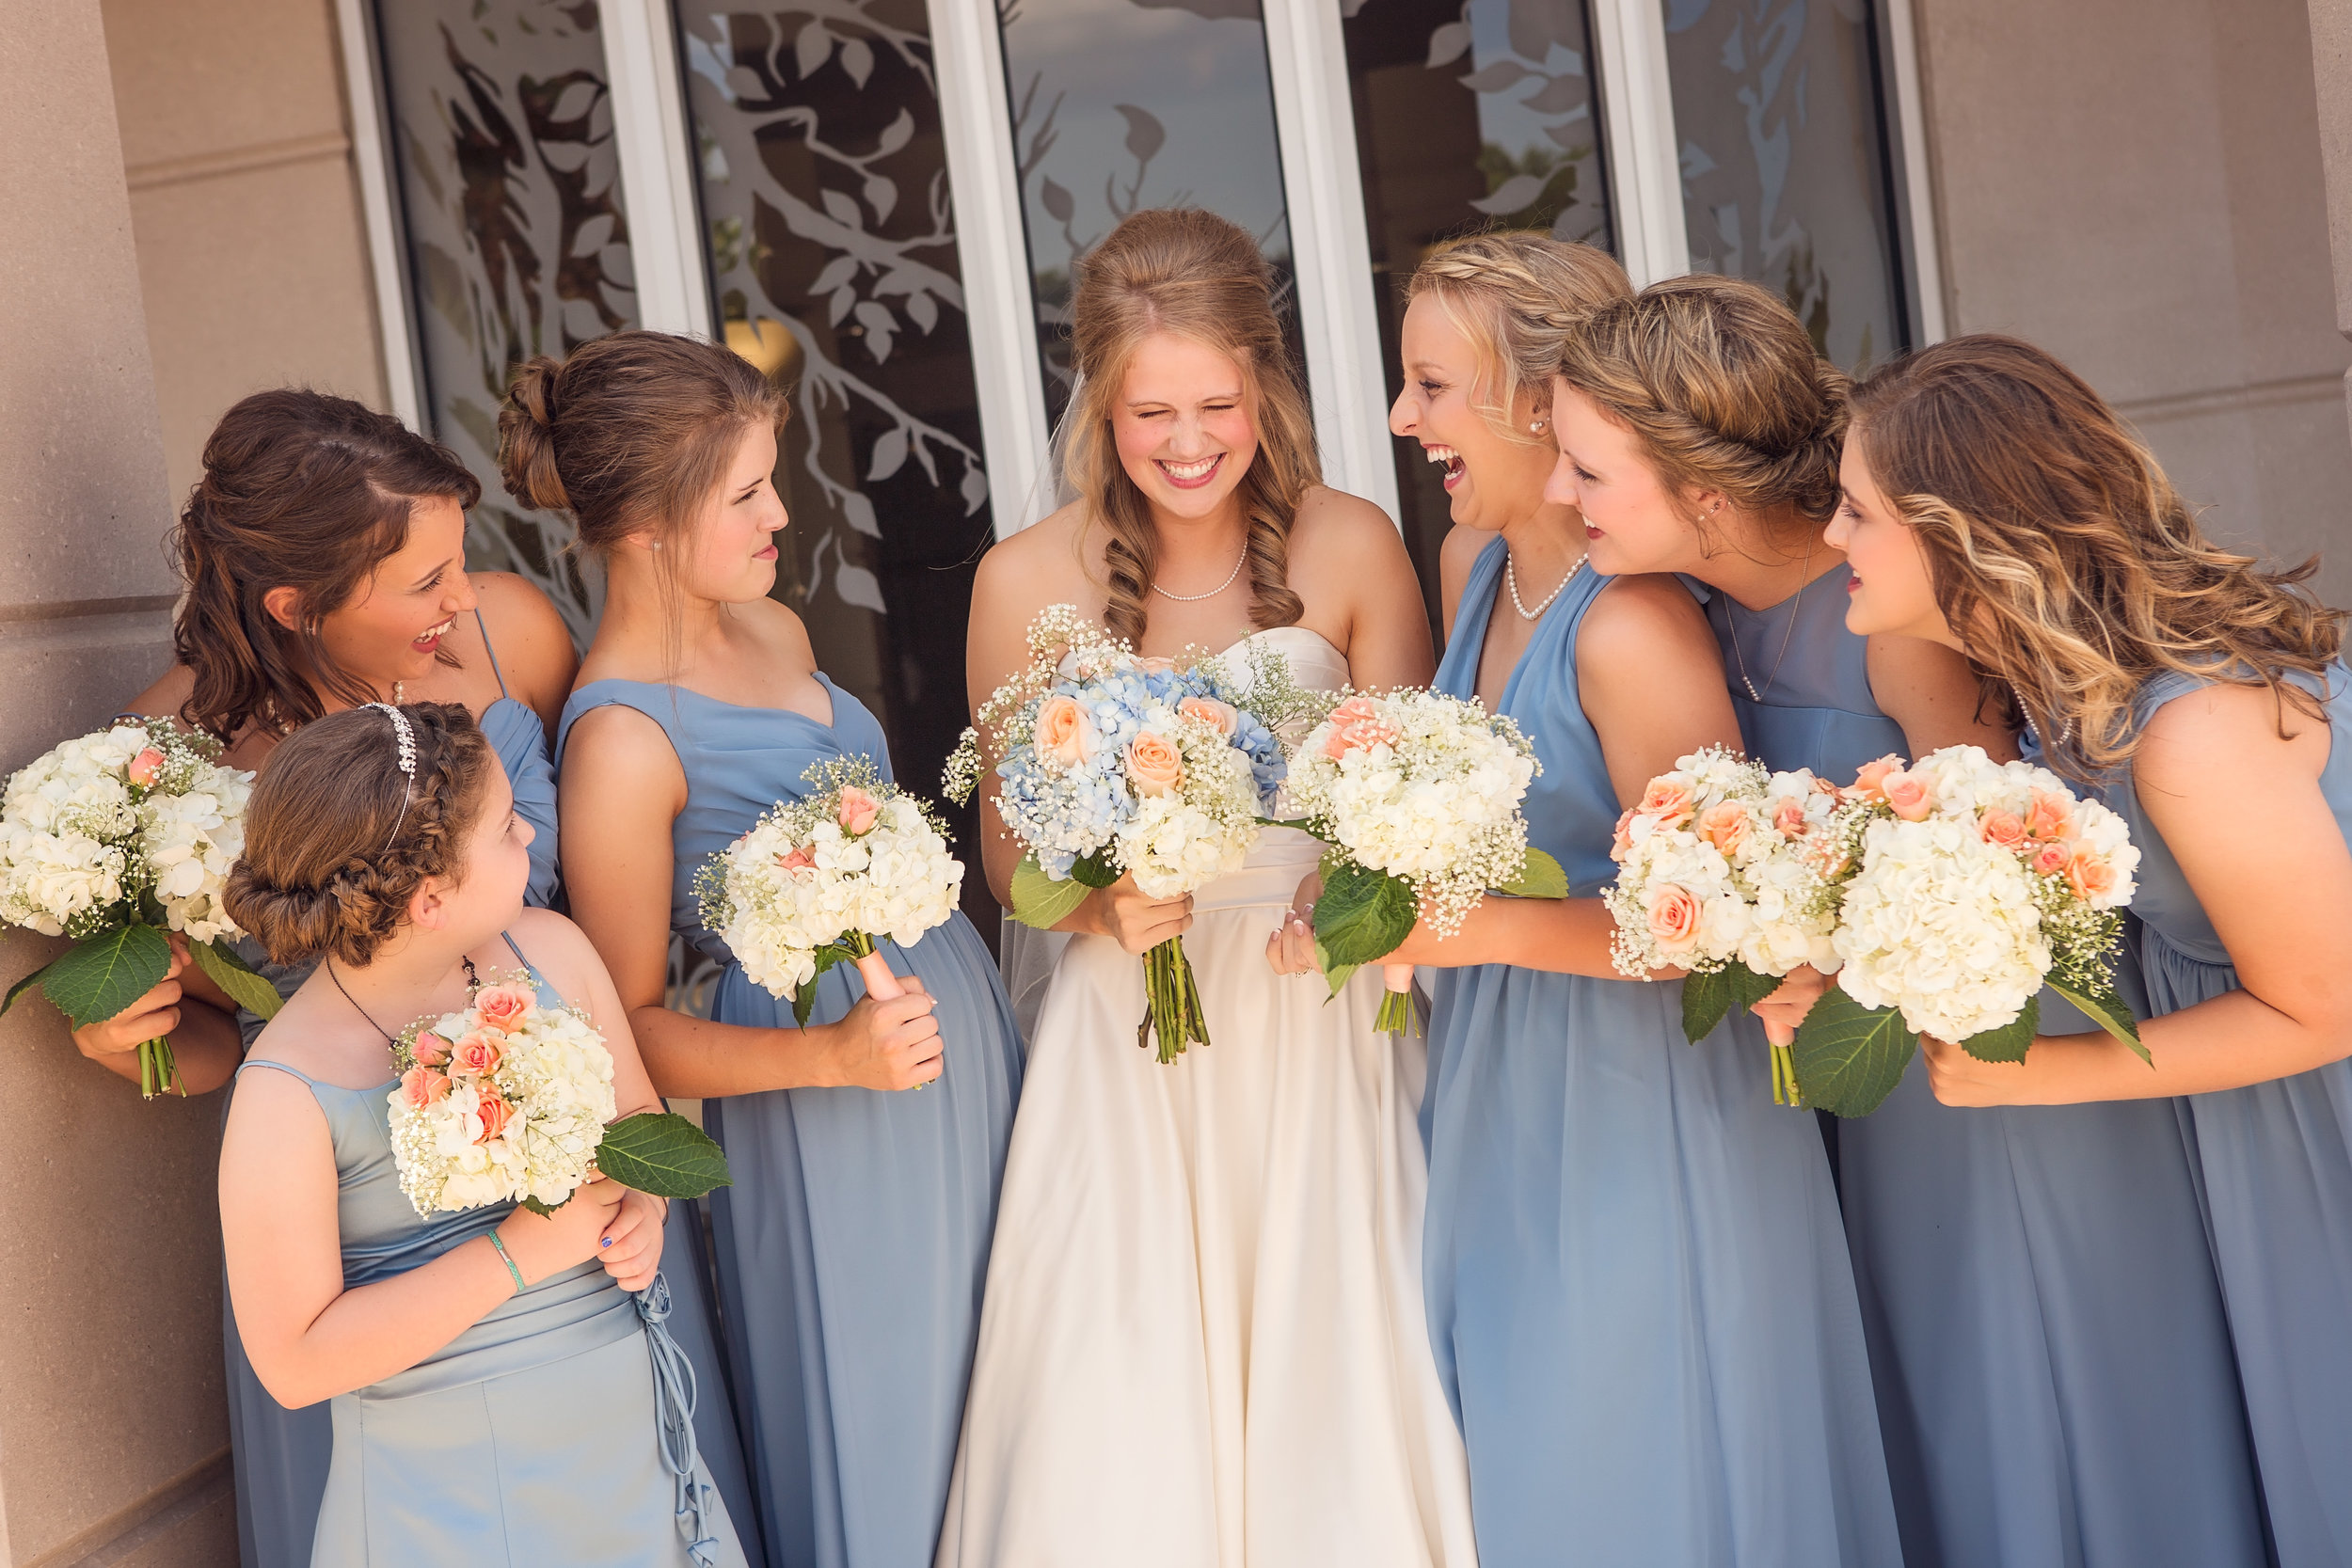 An Arkansas bride laughs with her bridesmaids during her wedding photography.